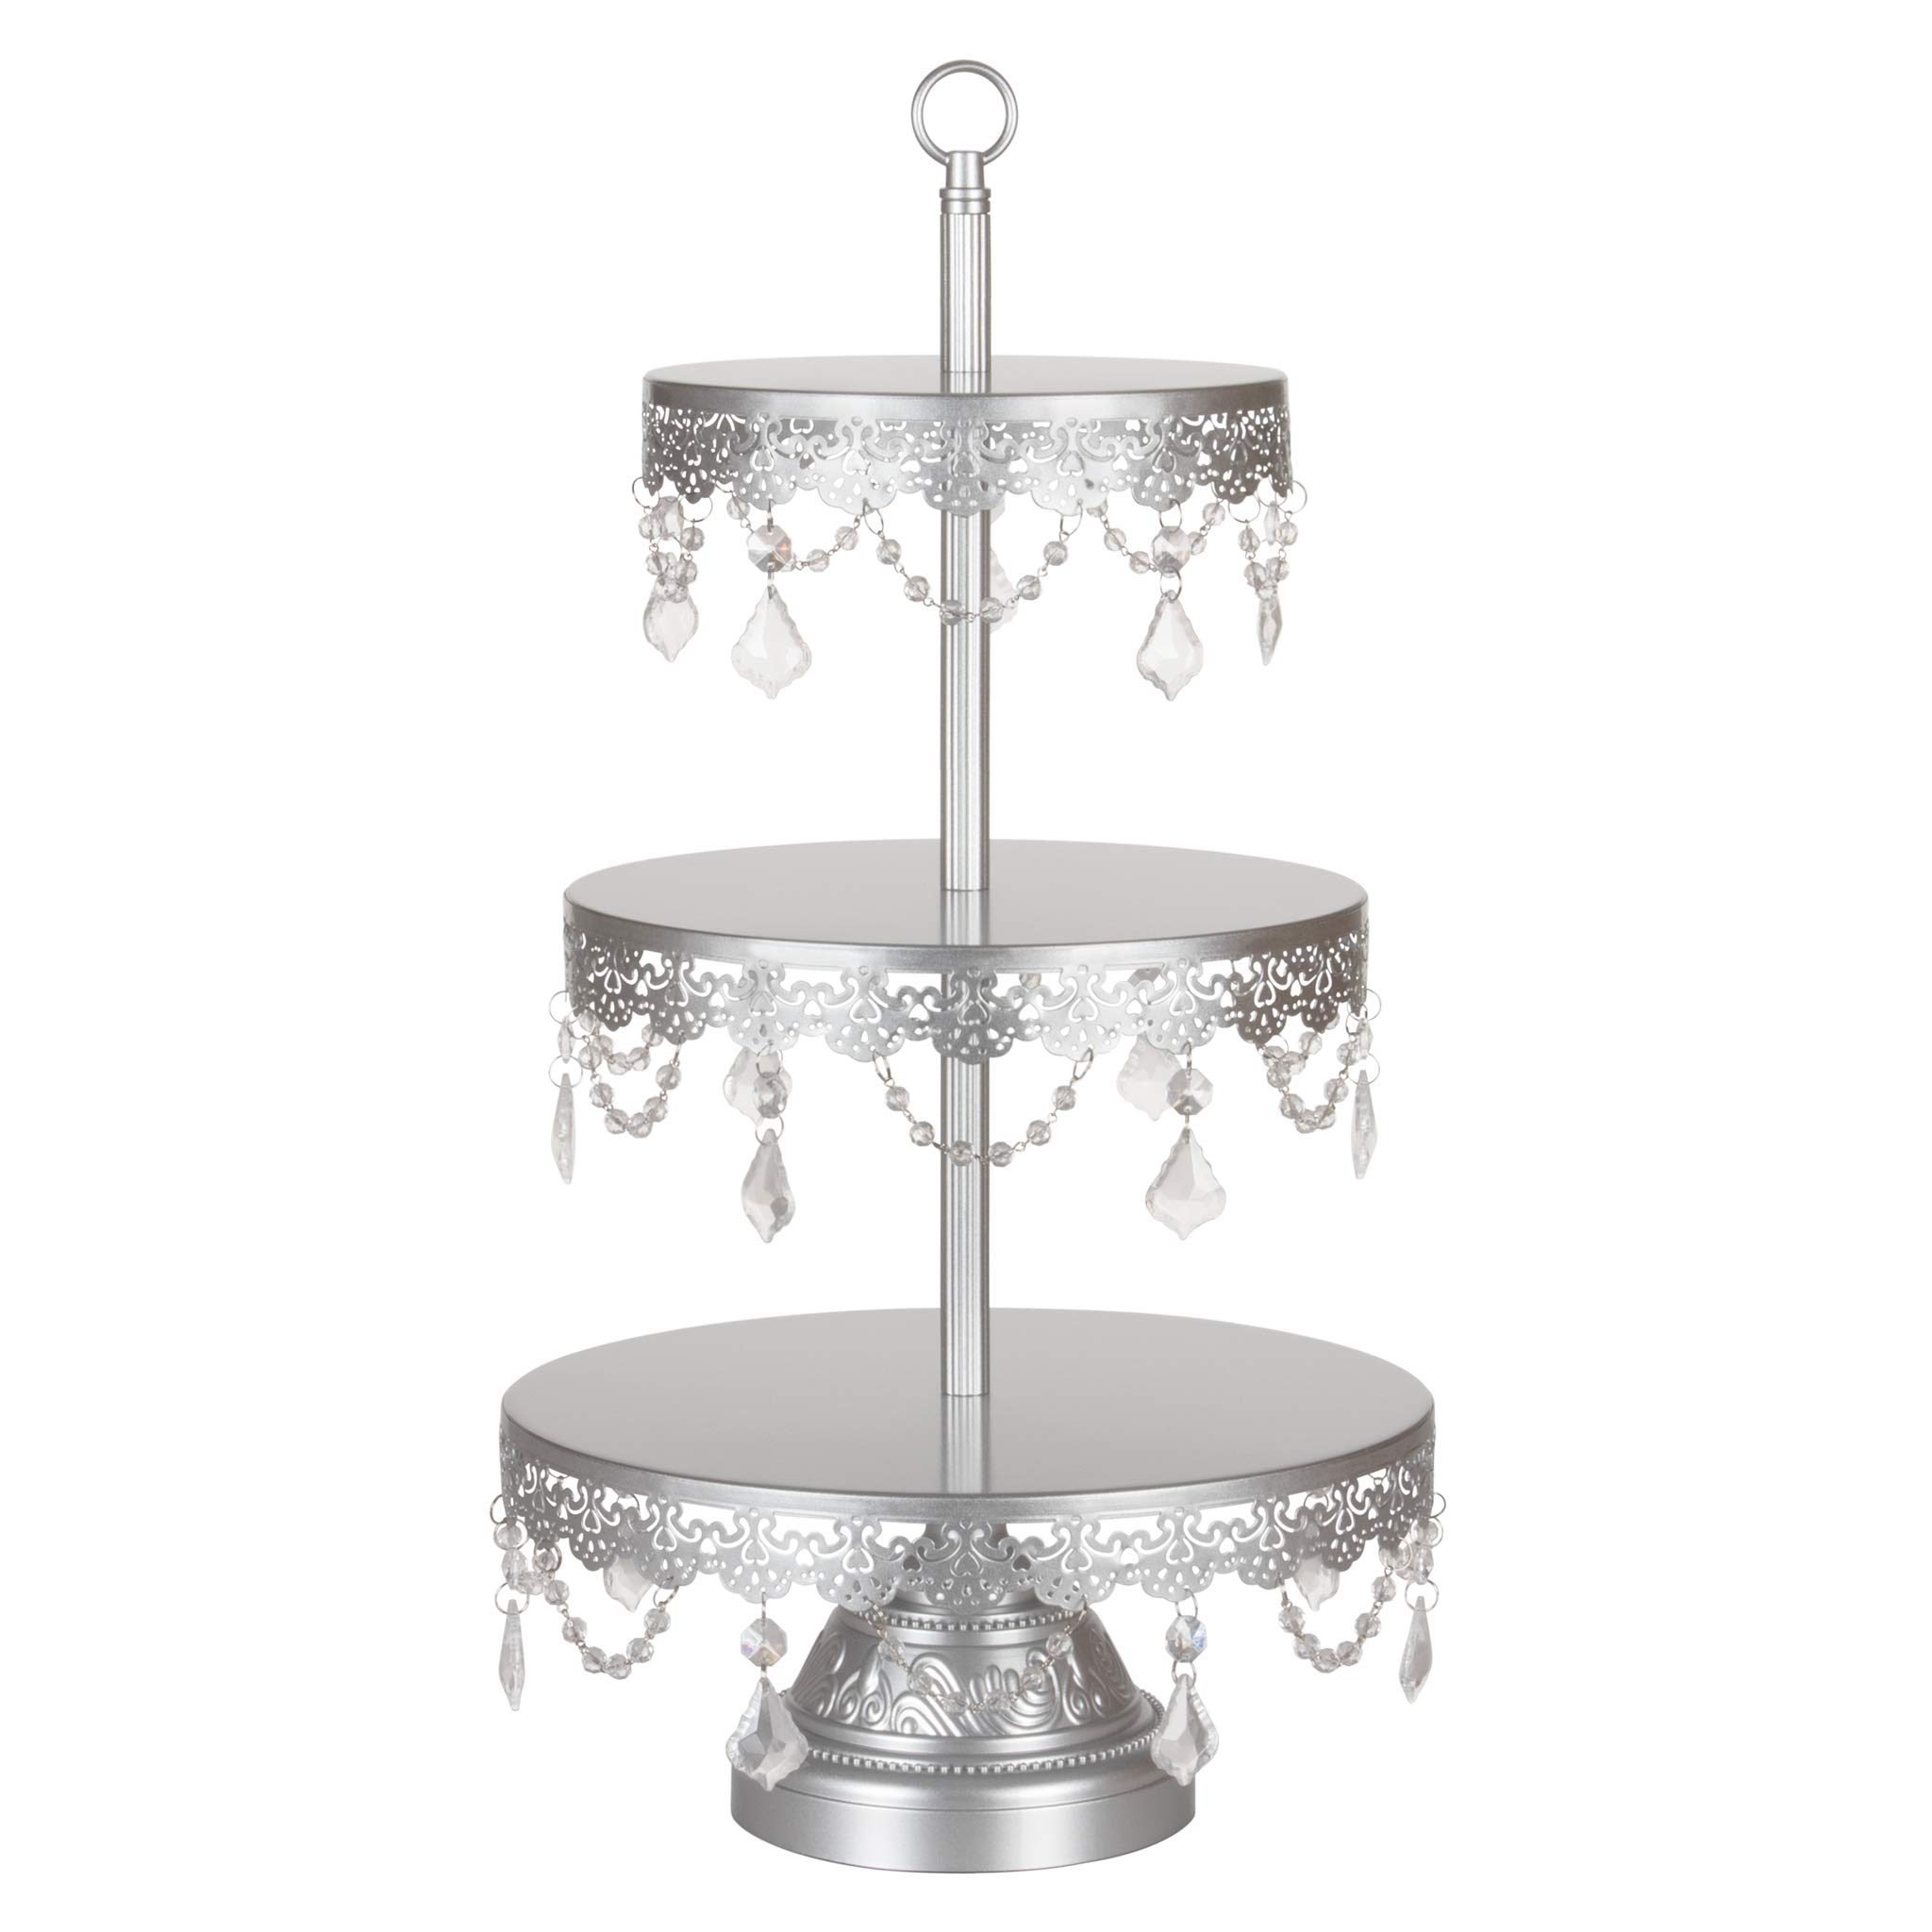 Amalfi Decor 3 Tier Dessert Cupcake Stand, Large Pastry Candy Cake Cookie Tower Holder Plate for Wedding Event Birthday Party, Round Metal Pedestal Tray with Crystals, Silver by Amalfi Décor